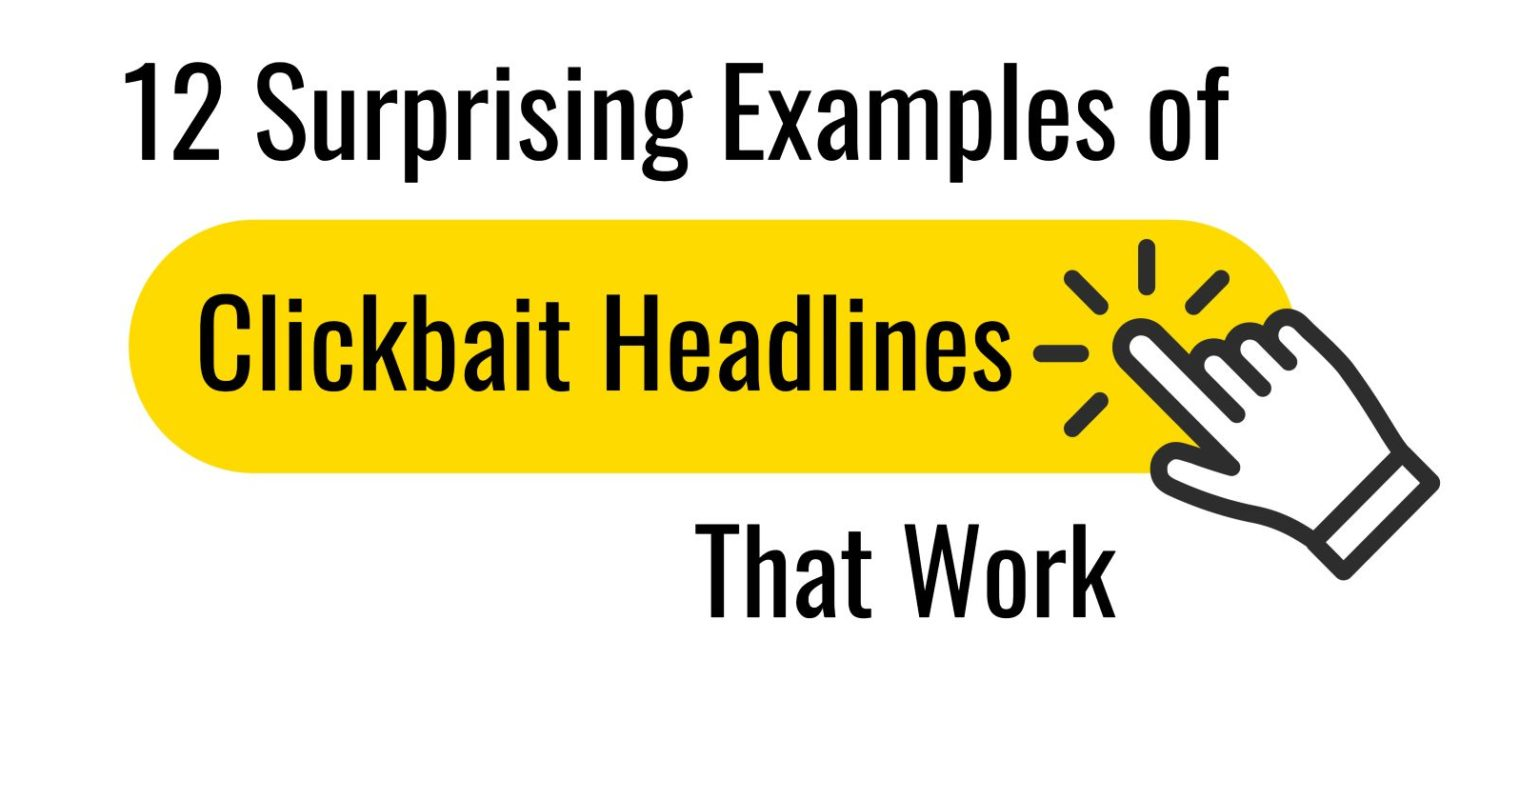 12 Surprising Examples of Clickbait Headlines That Work